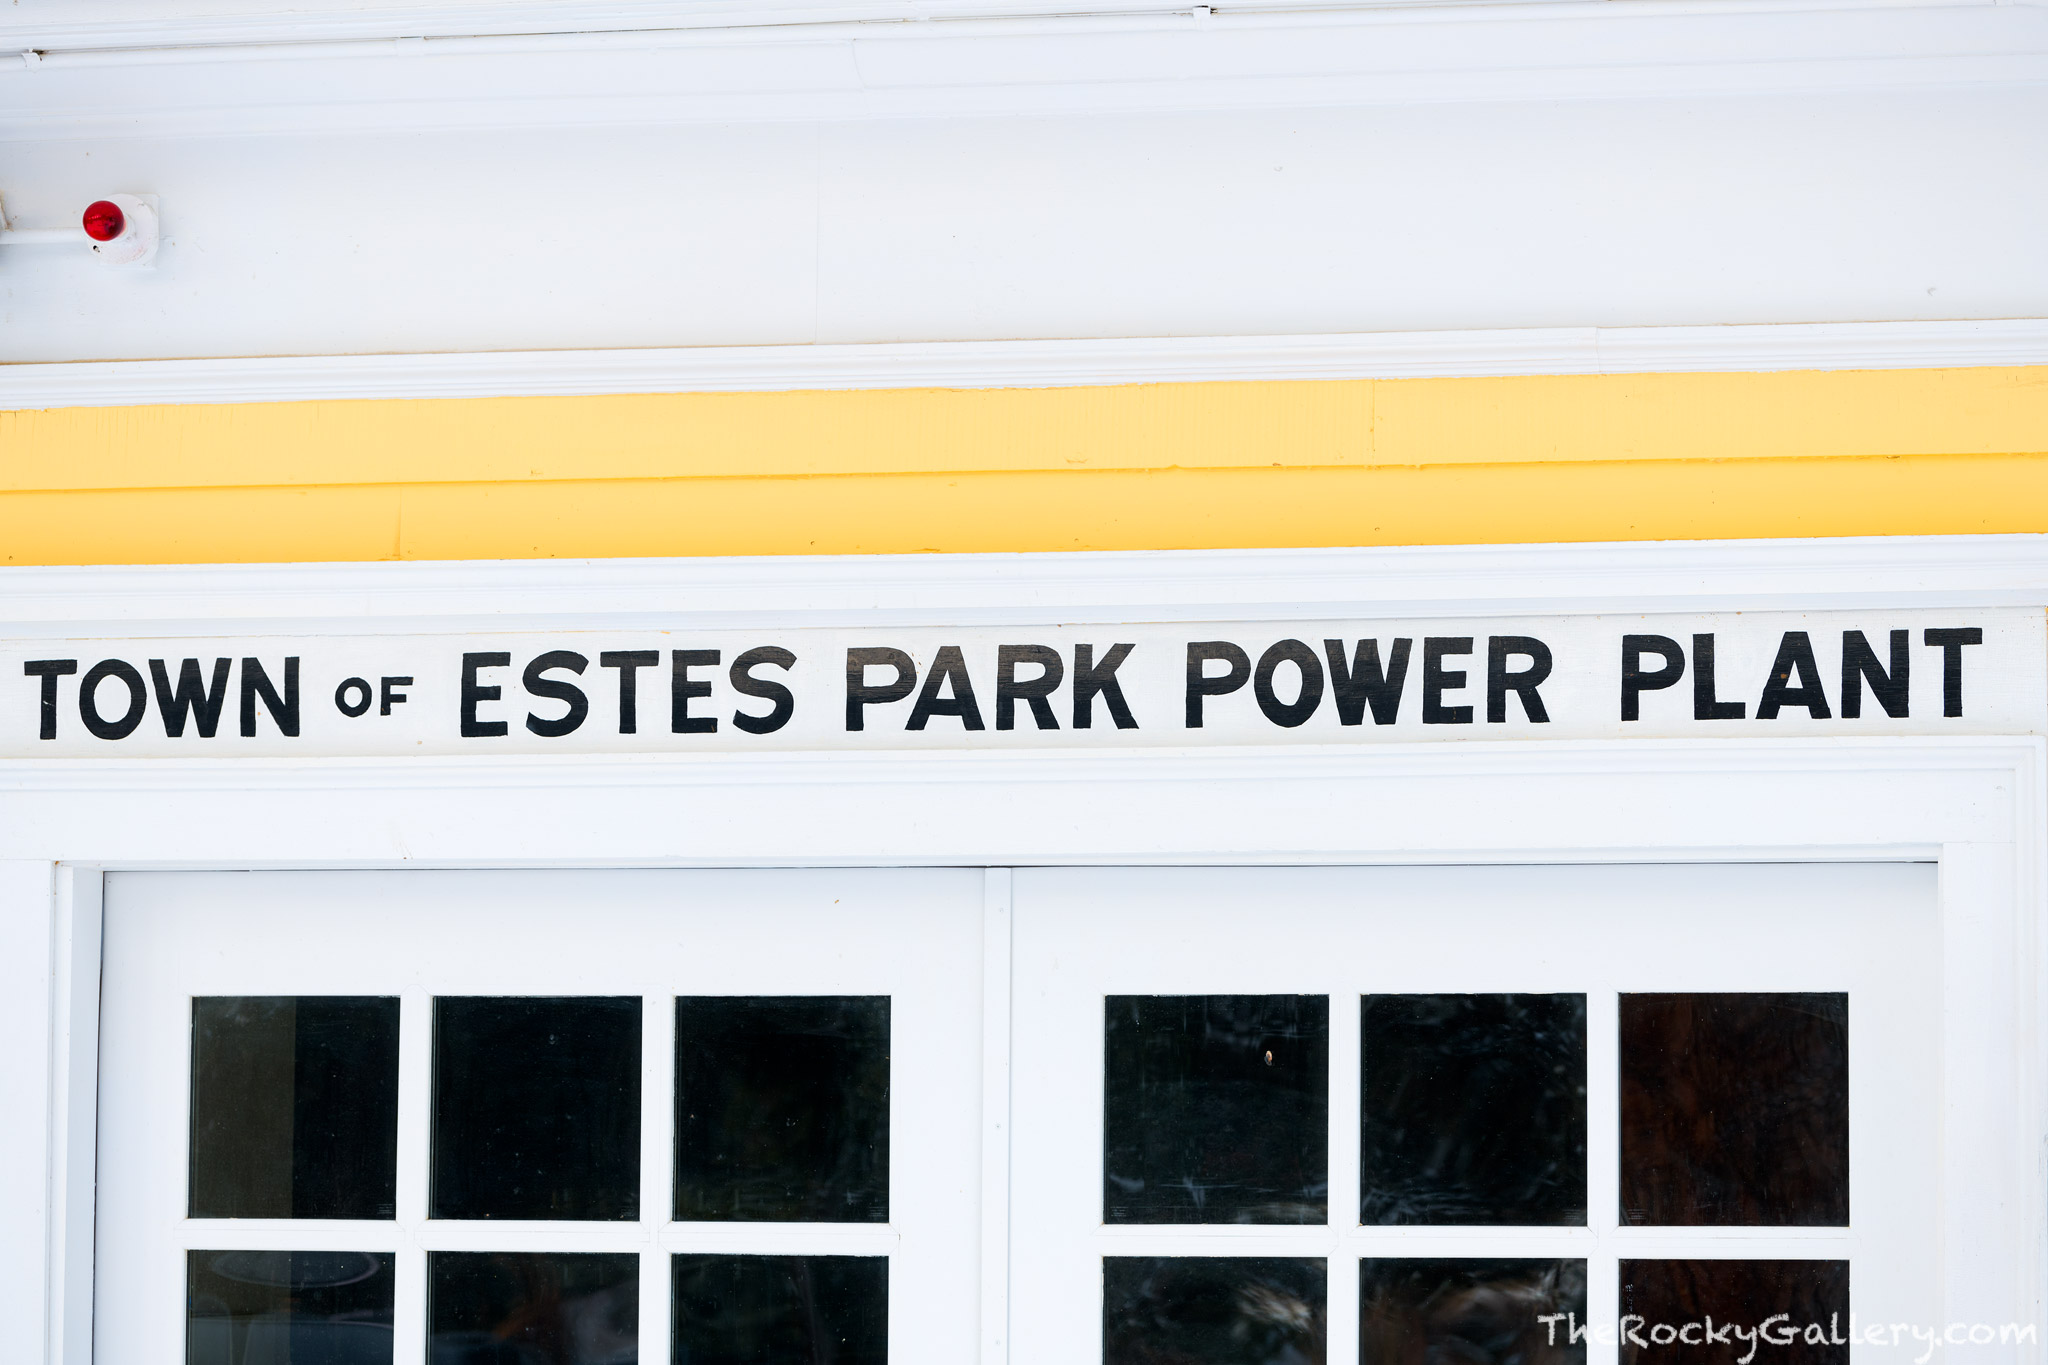 Estes Park Power Plant, Estes Park Hydroelectric Plant,museum,Rocky Mountain National Park,FO Stanley,Fall River,Colorado,Landscape,Photography,Sign,RMNP,Estes Park,hand of man , photo